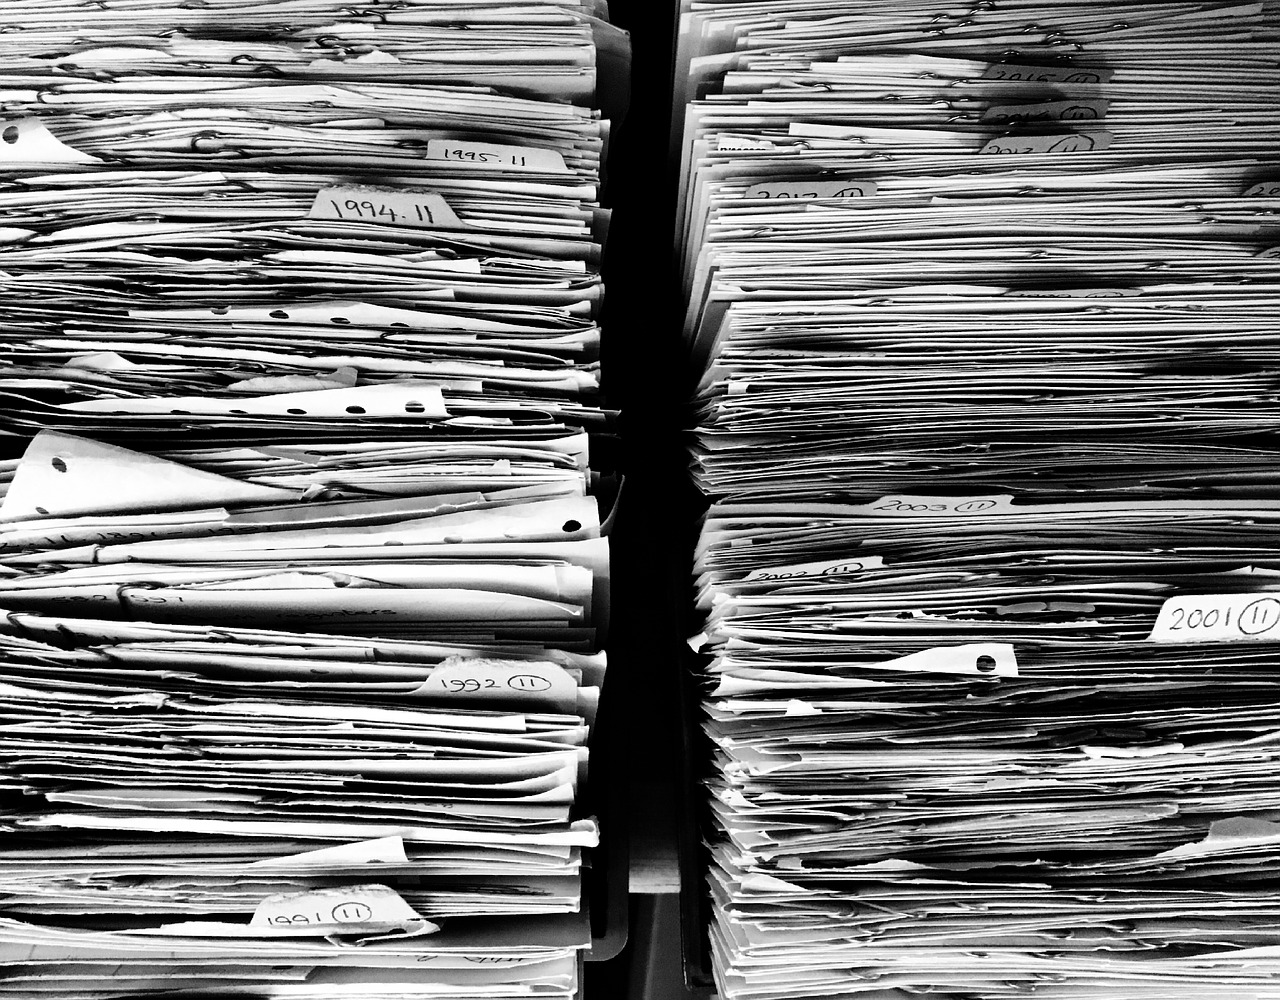 stacks of files and paperwork